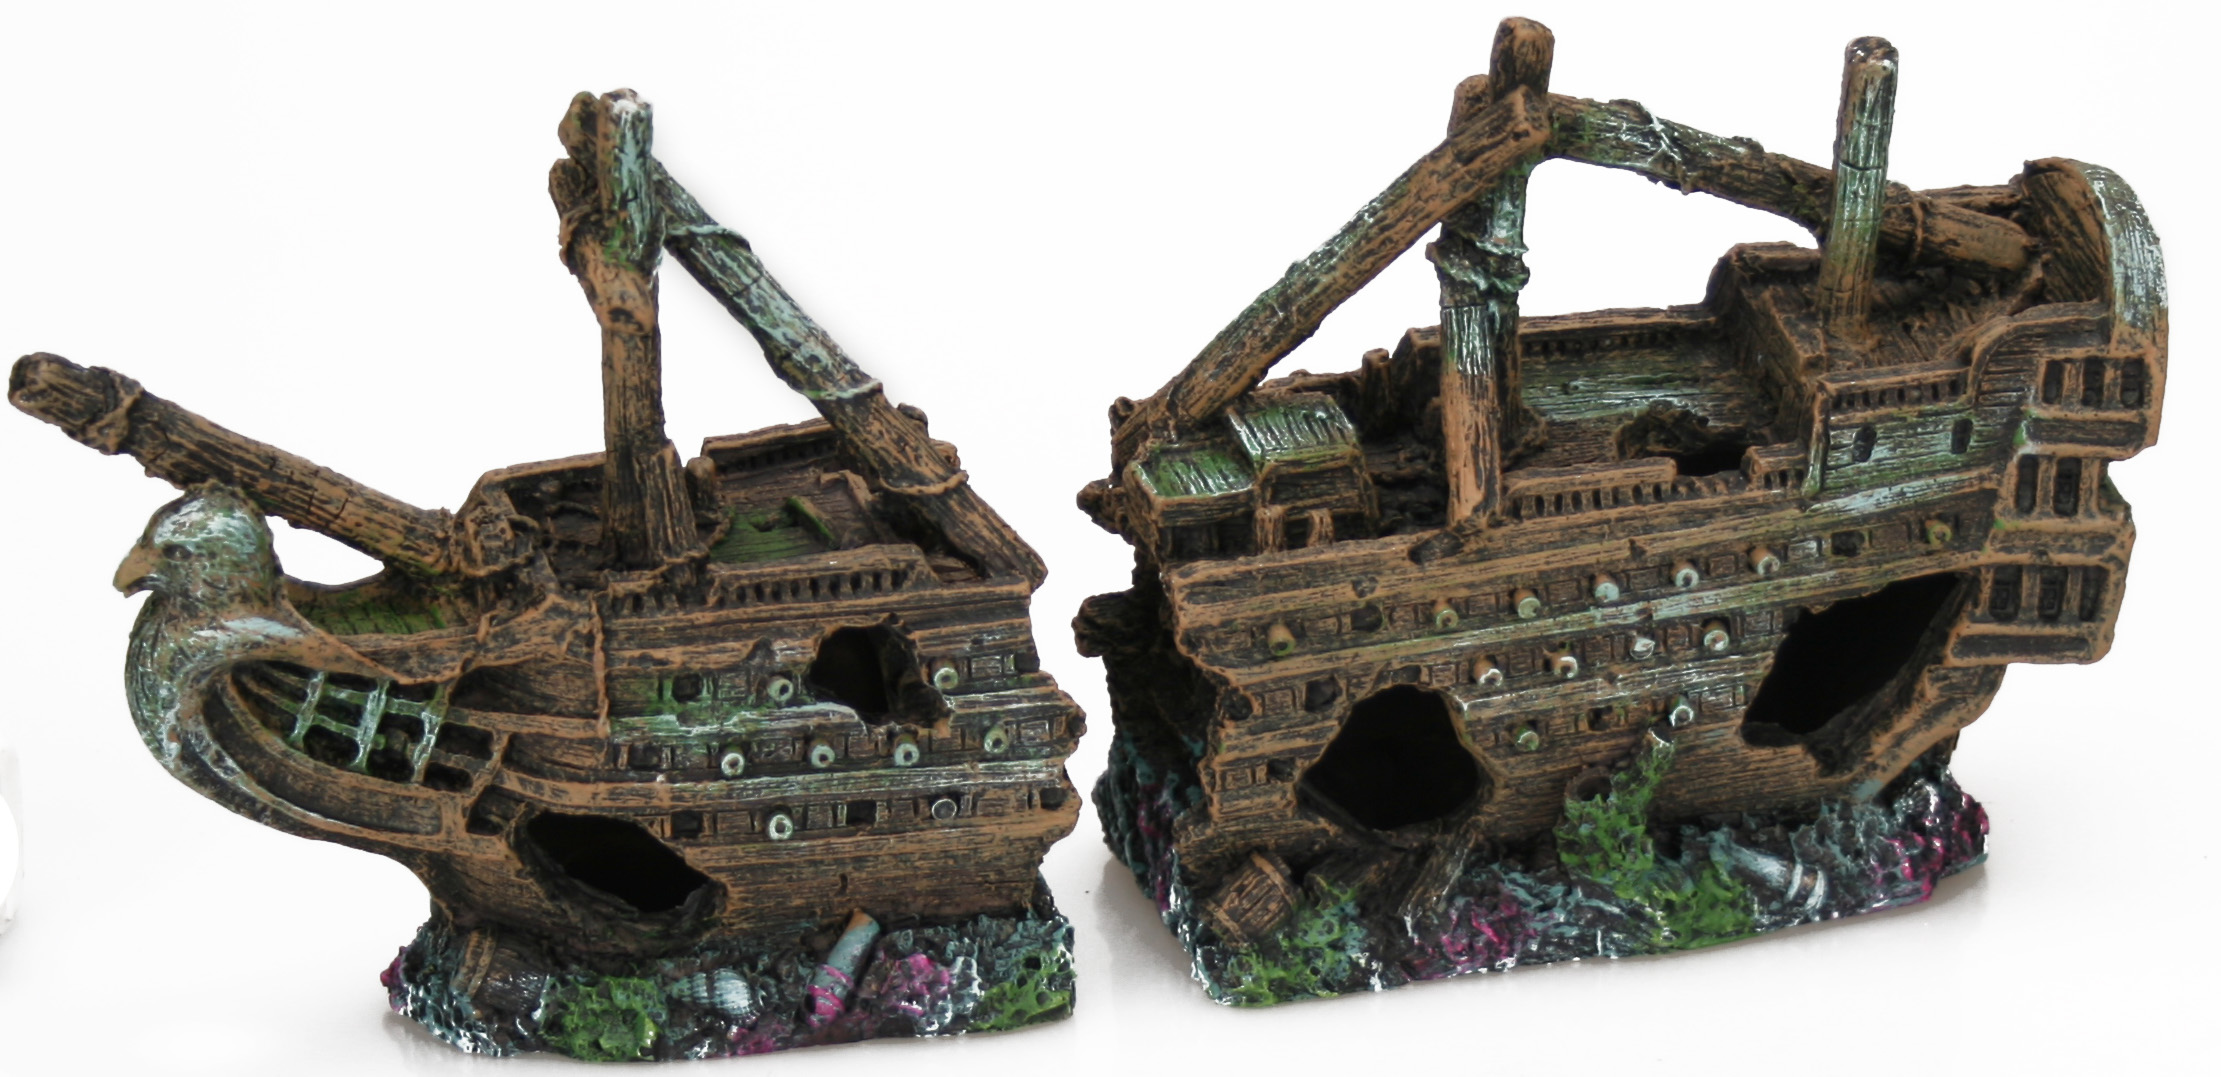 Small Galleon Shipwreck (25 x 6.5 x 12.5 cm)